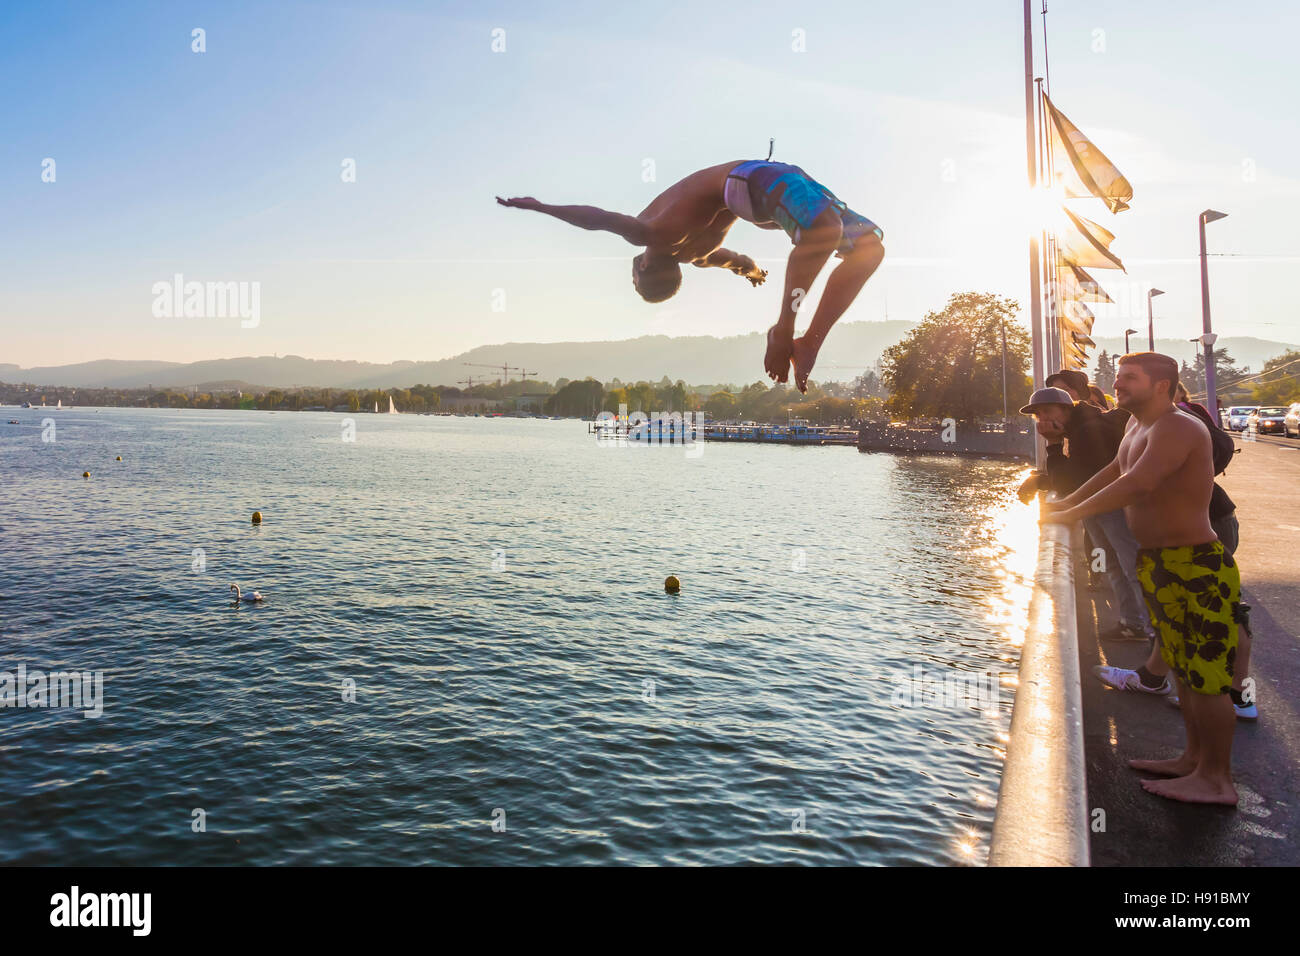 YOUNG MAN JUMPING FROM QUAIBRUCKE BRIDGE INTO LAKE ZURICH, ZURICH, SWITZERLAND - Stock Image